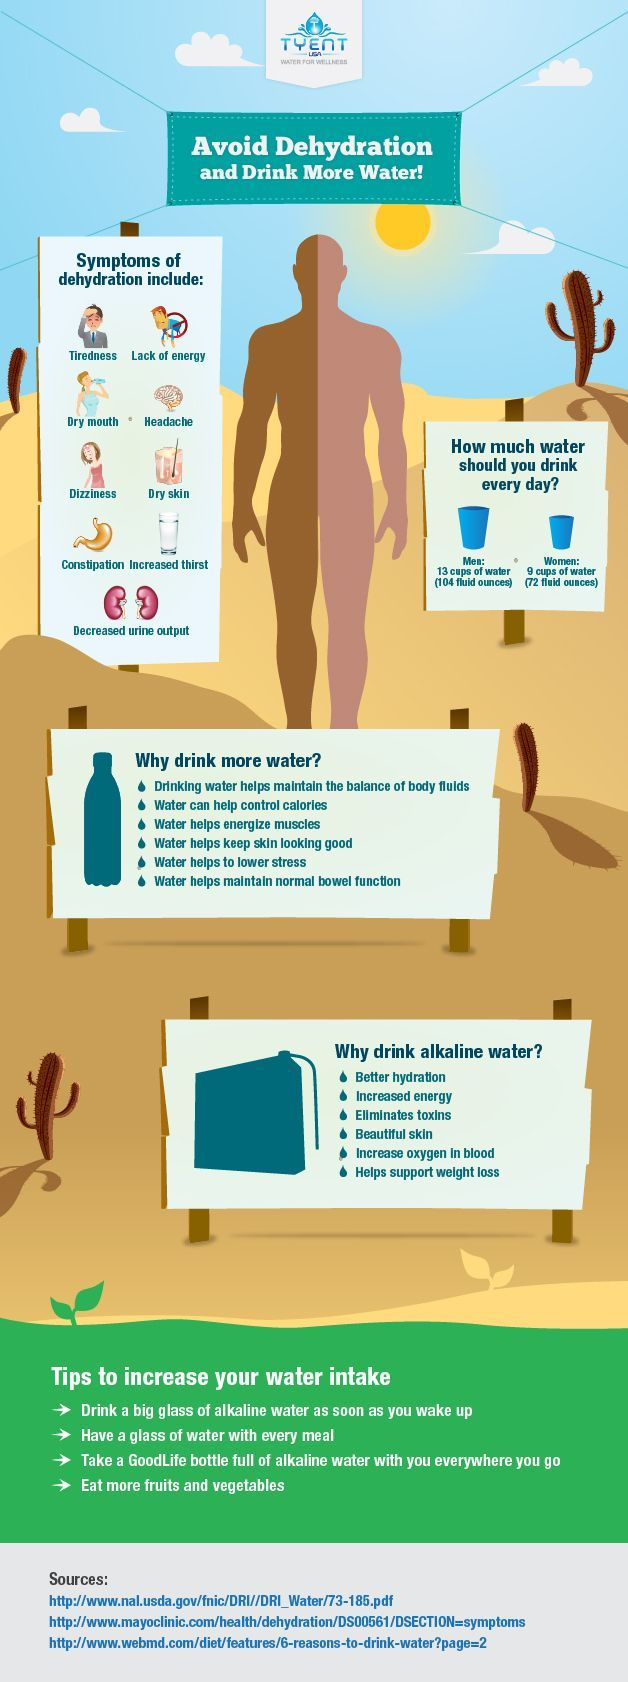 Avoid Dehydration and Drink More Water! infographic